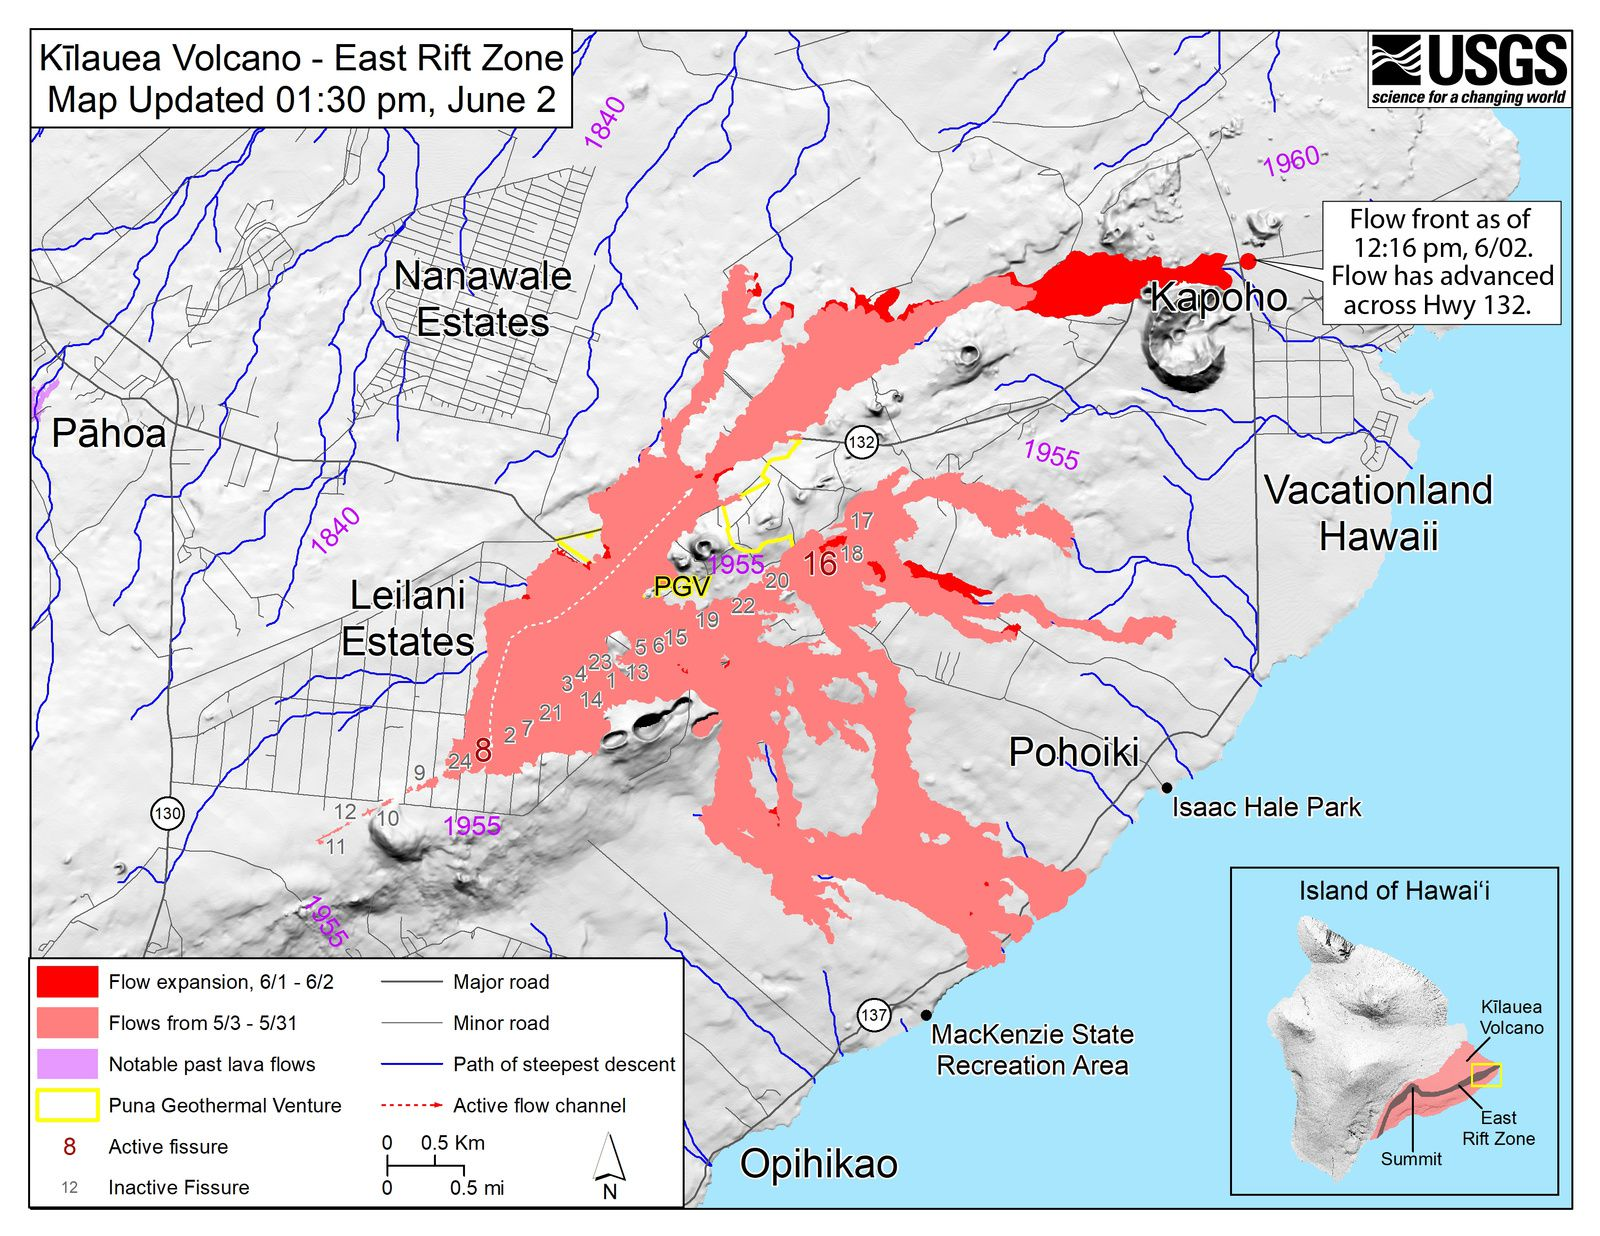 Kilauea East rift zone - map fissures and flows 8 and 16 active - map at 02.06.2018 / 13h30 / HVO-USGS